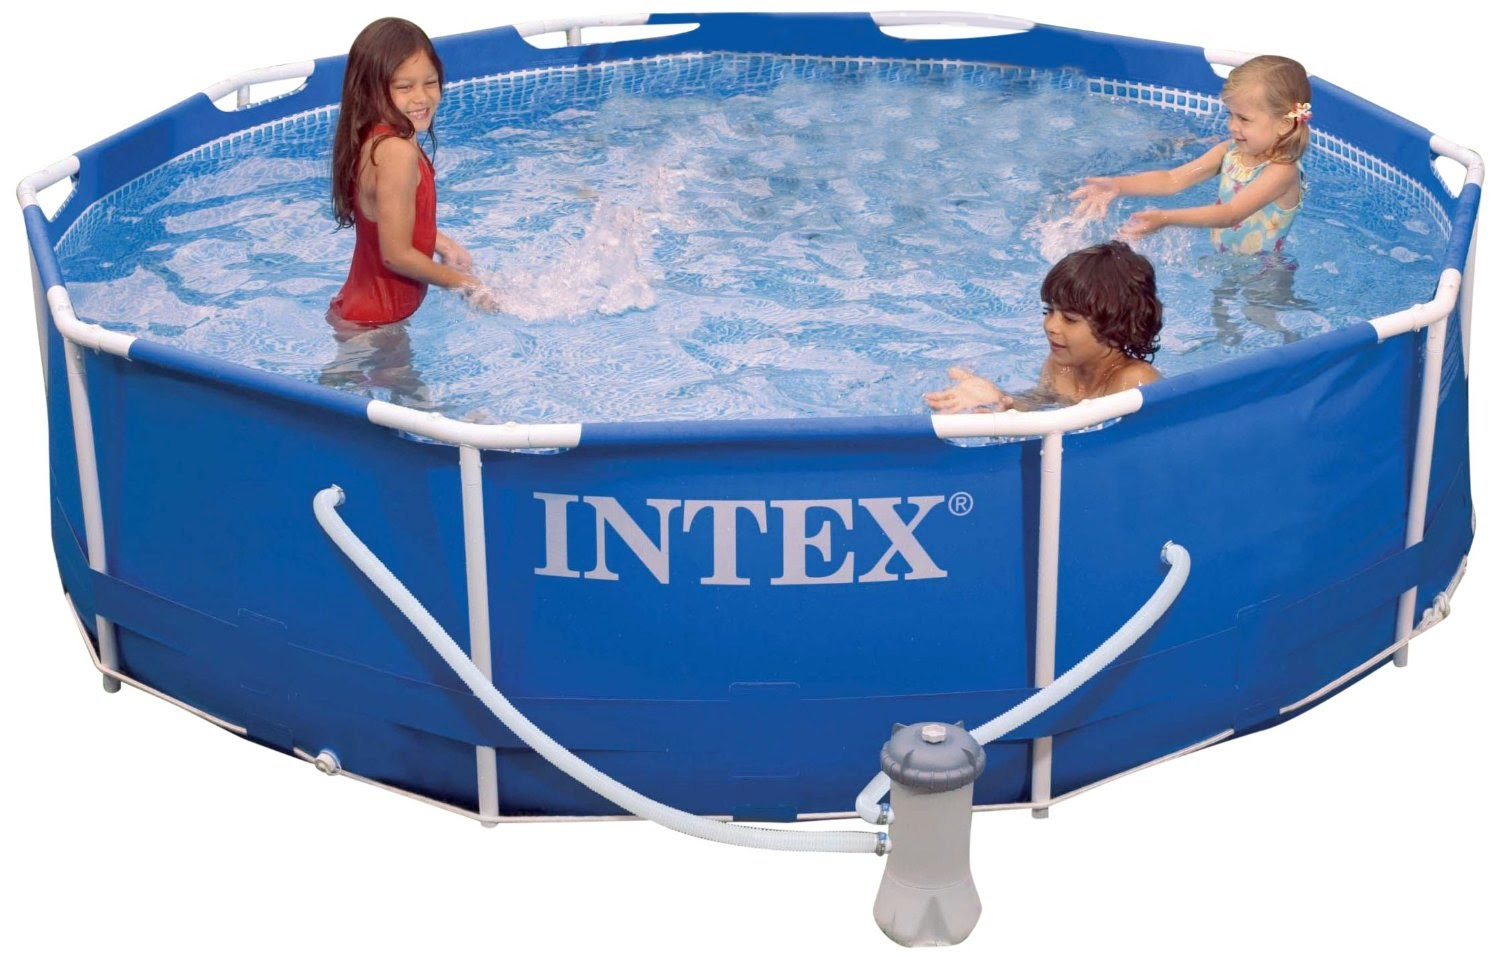 Best Seller Intex Pools Reviews Intex Pools Walmart